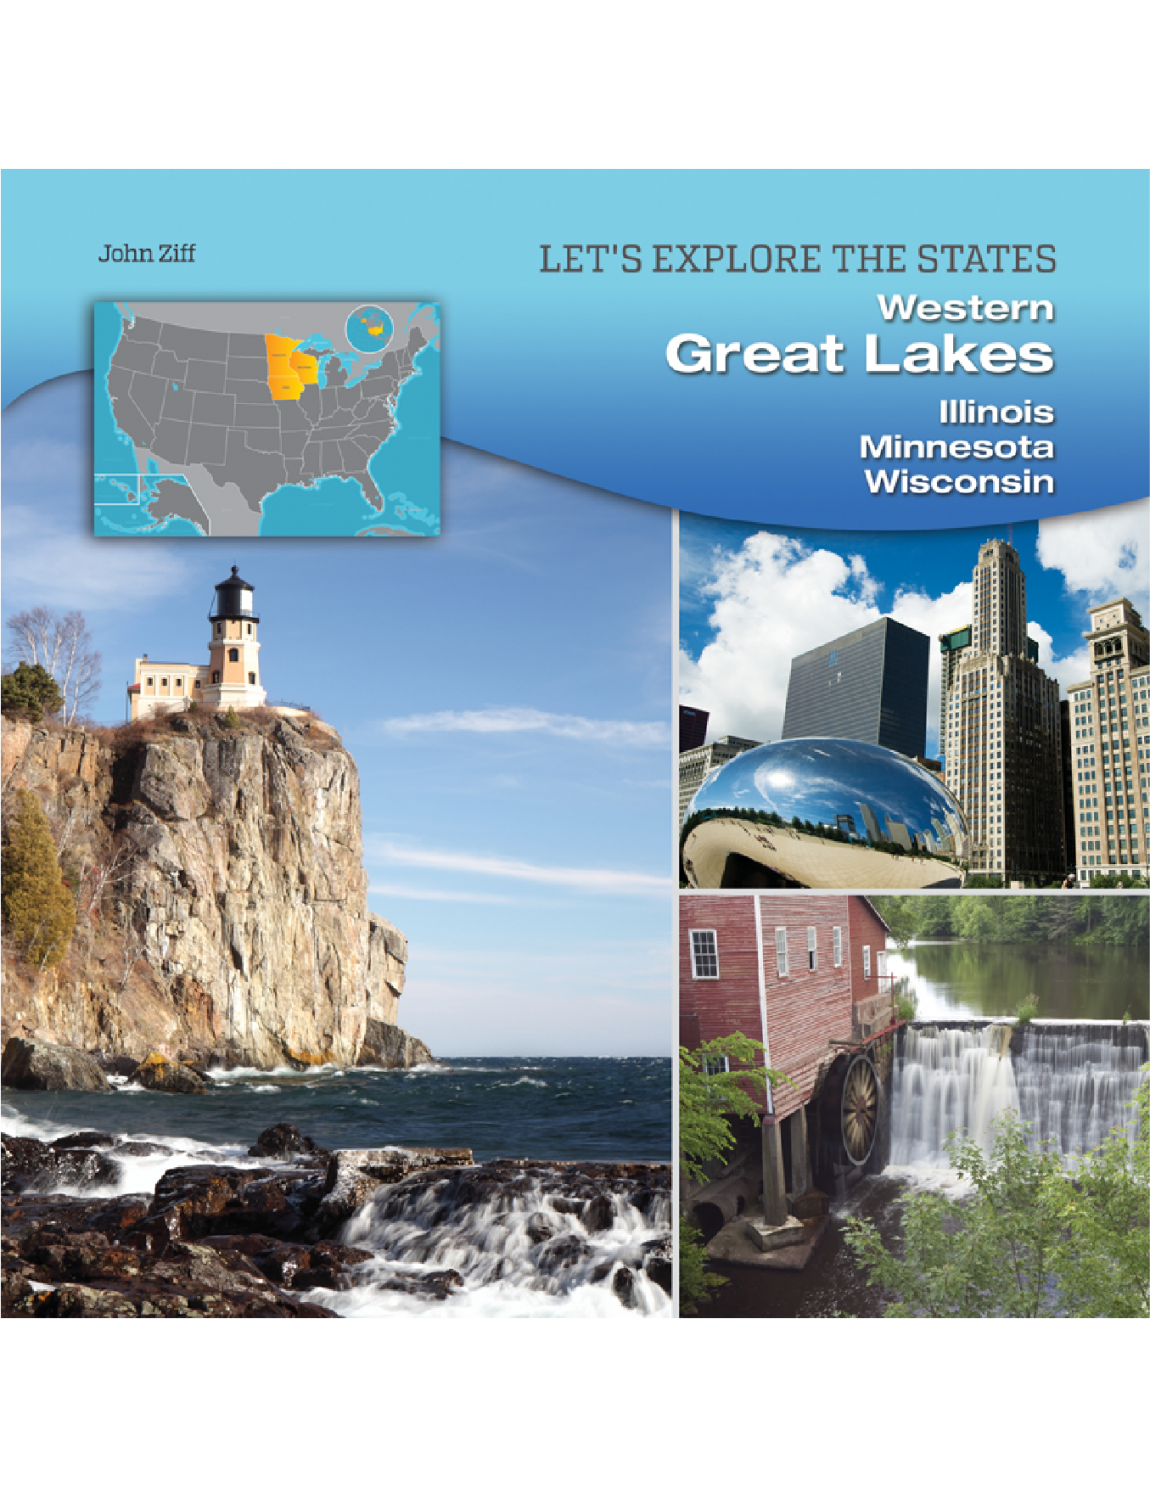 western-great-lakes-01.png